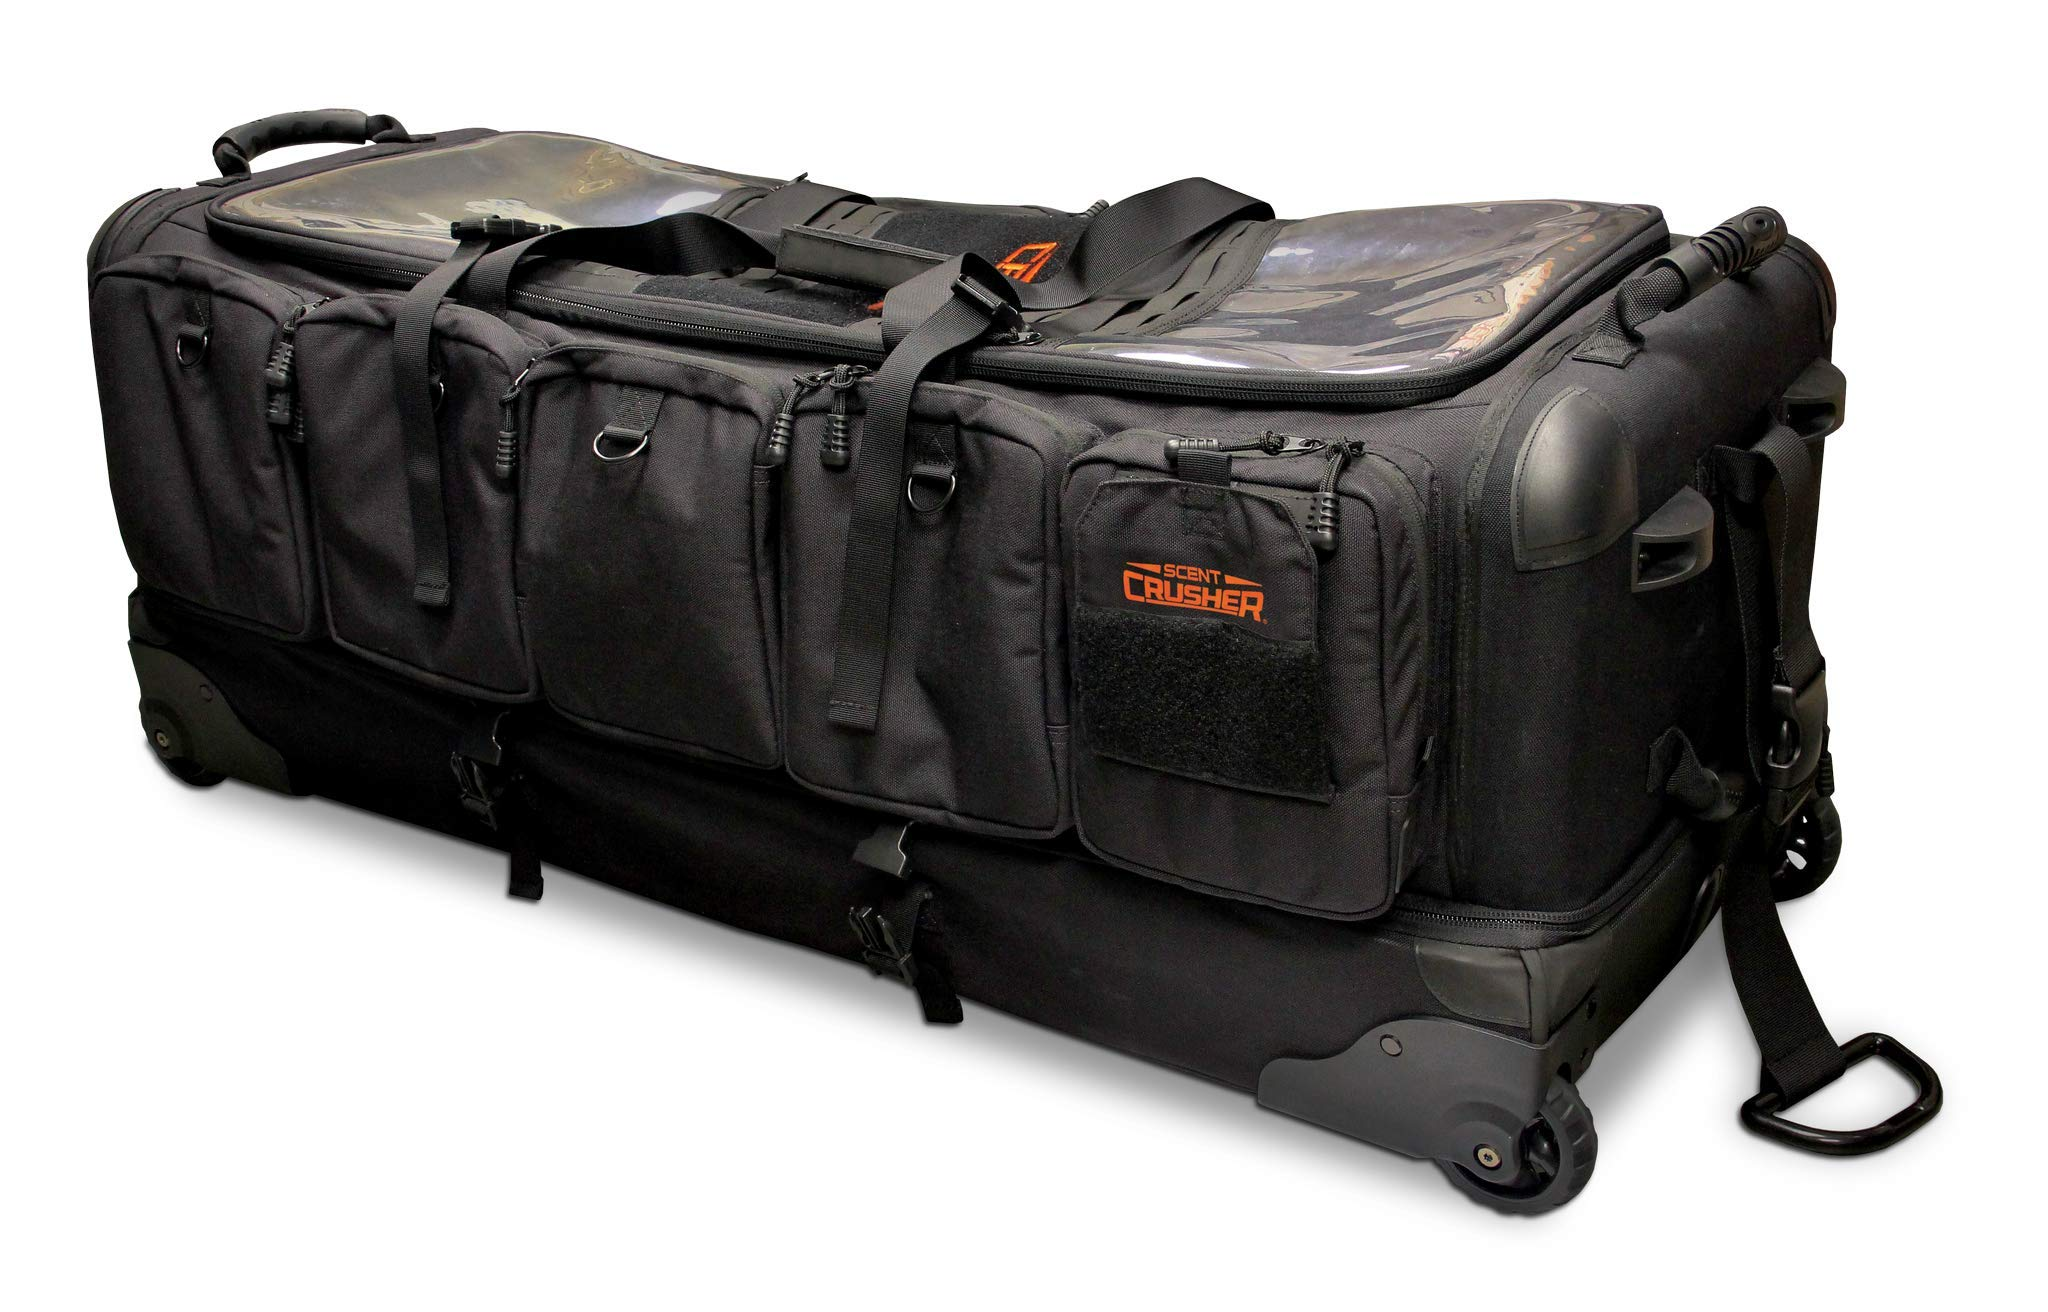 Scent Crusher Pro Series Rolling Bow Transporter - Destroys Odors Within 30 mins, Rigid and Padded Compartment for Bow, Heavy-Duty Oversized All-Terrain Wheels and Skit Plates, Airport/TSA Compliant